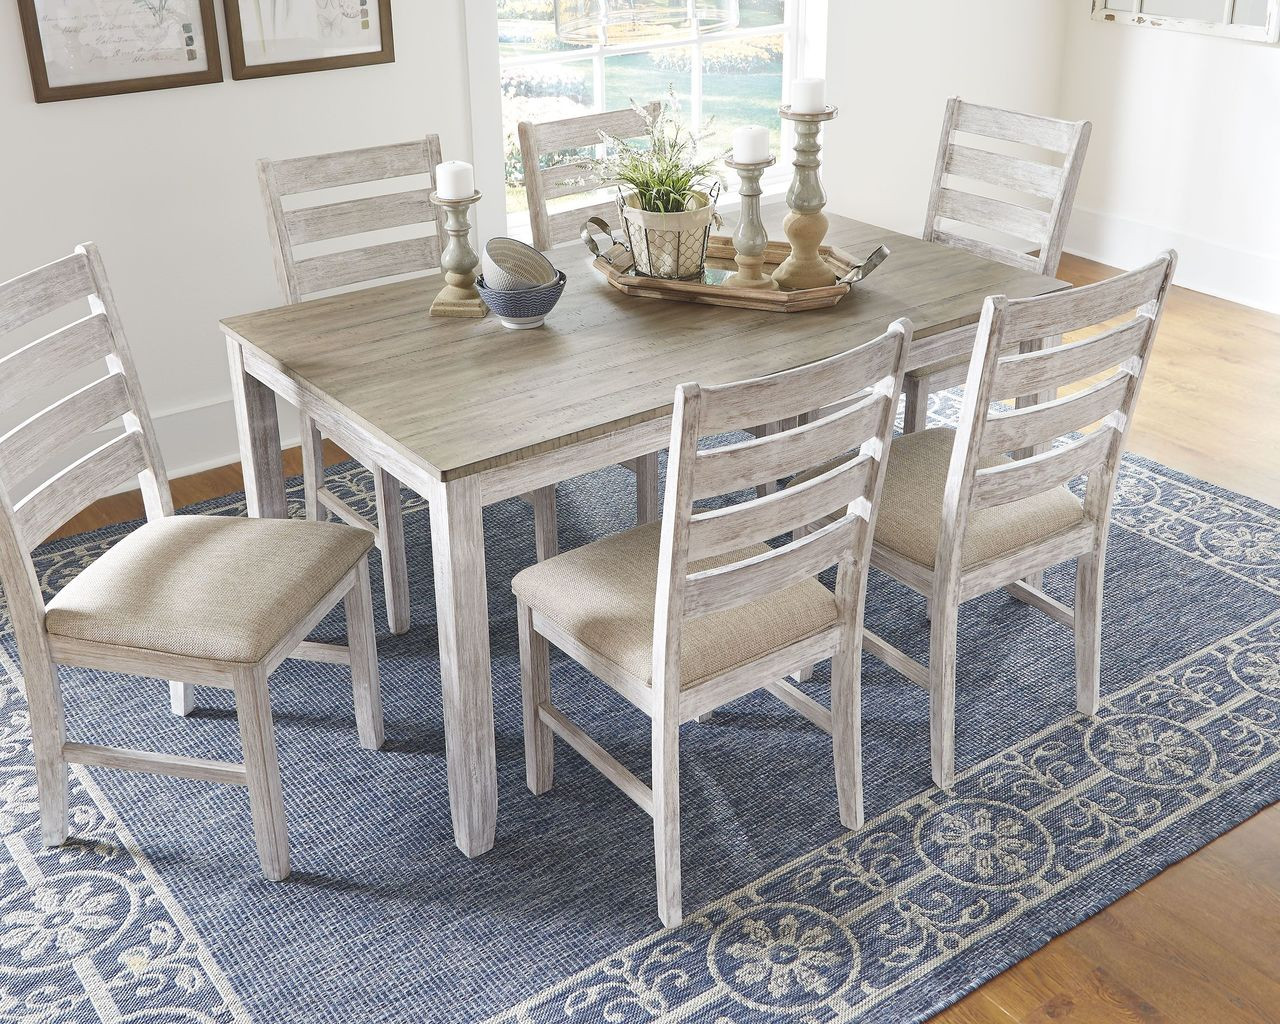 Picture of: The Skempton White Light Brown Dining Room Table Set 7 Cn Available At Ritz Furniture Planet Serving Mississauga On